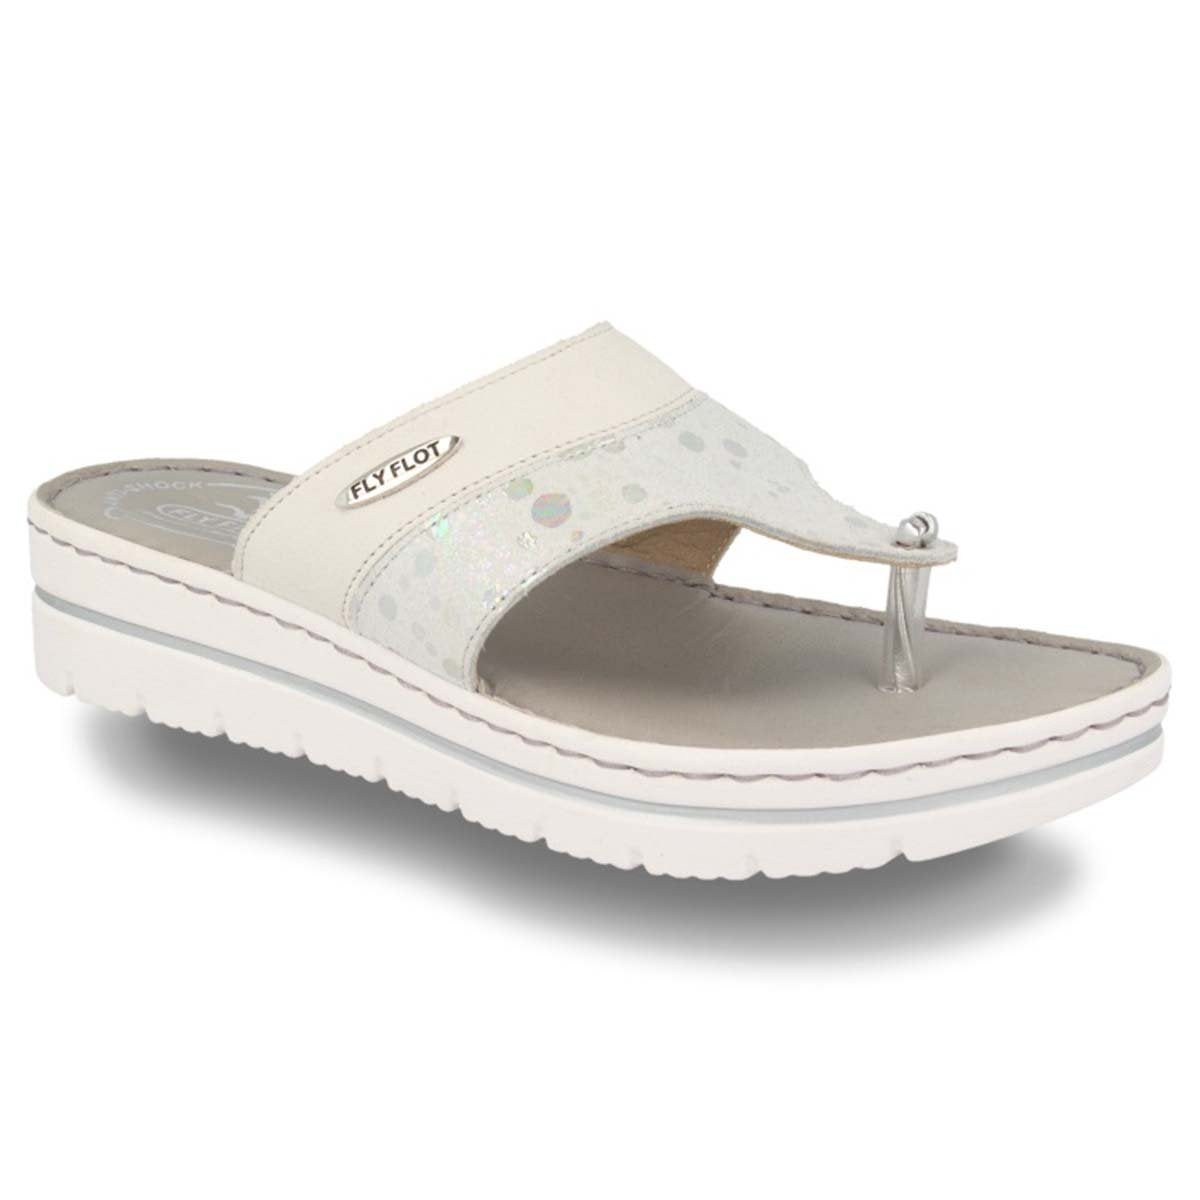 See photos Leather Woman Slipper Light Grey (25B80IG)